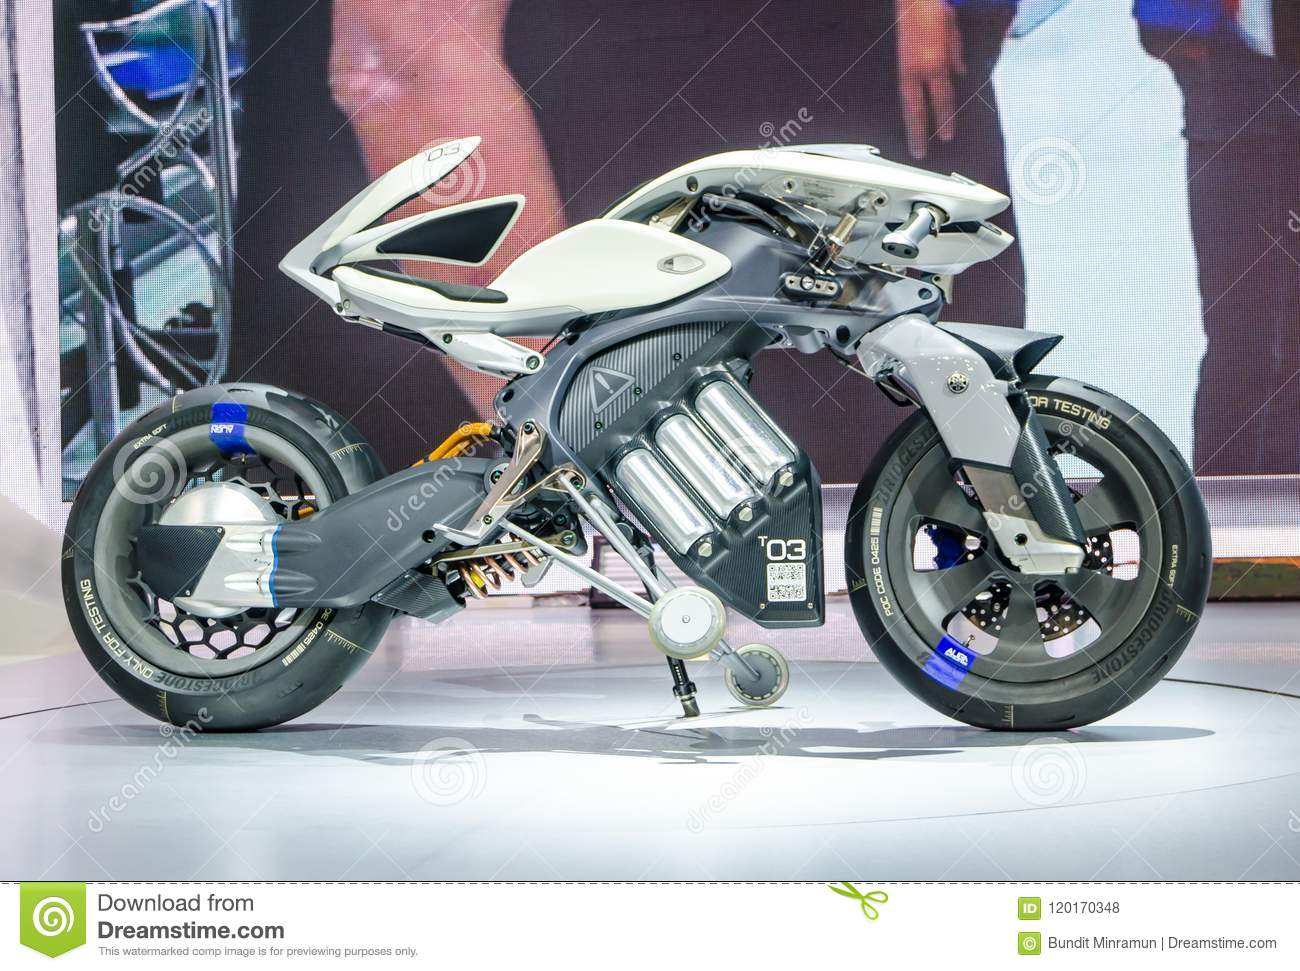 Yamaha Electric Motorcycle >> Yamaha T03 Electric Motorcycle Concept For Future Motorbike At